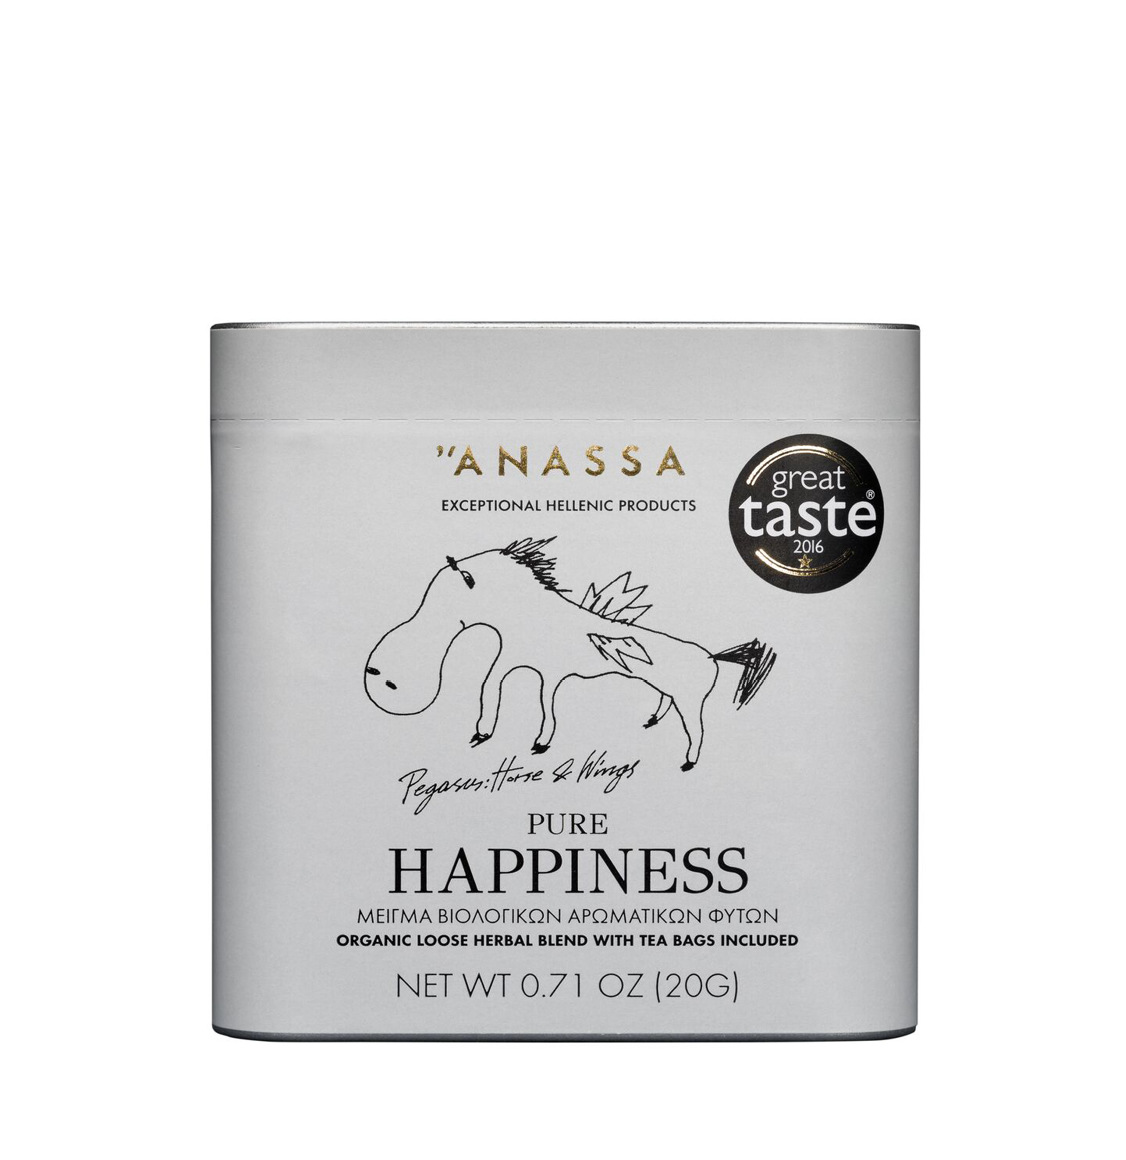 Anassa_Pure_Happiness_The_Project_Garments_A